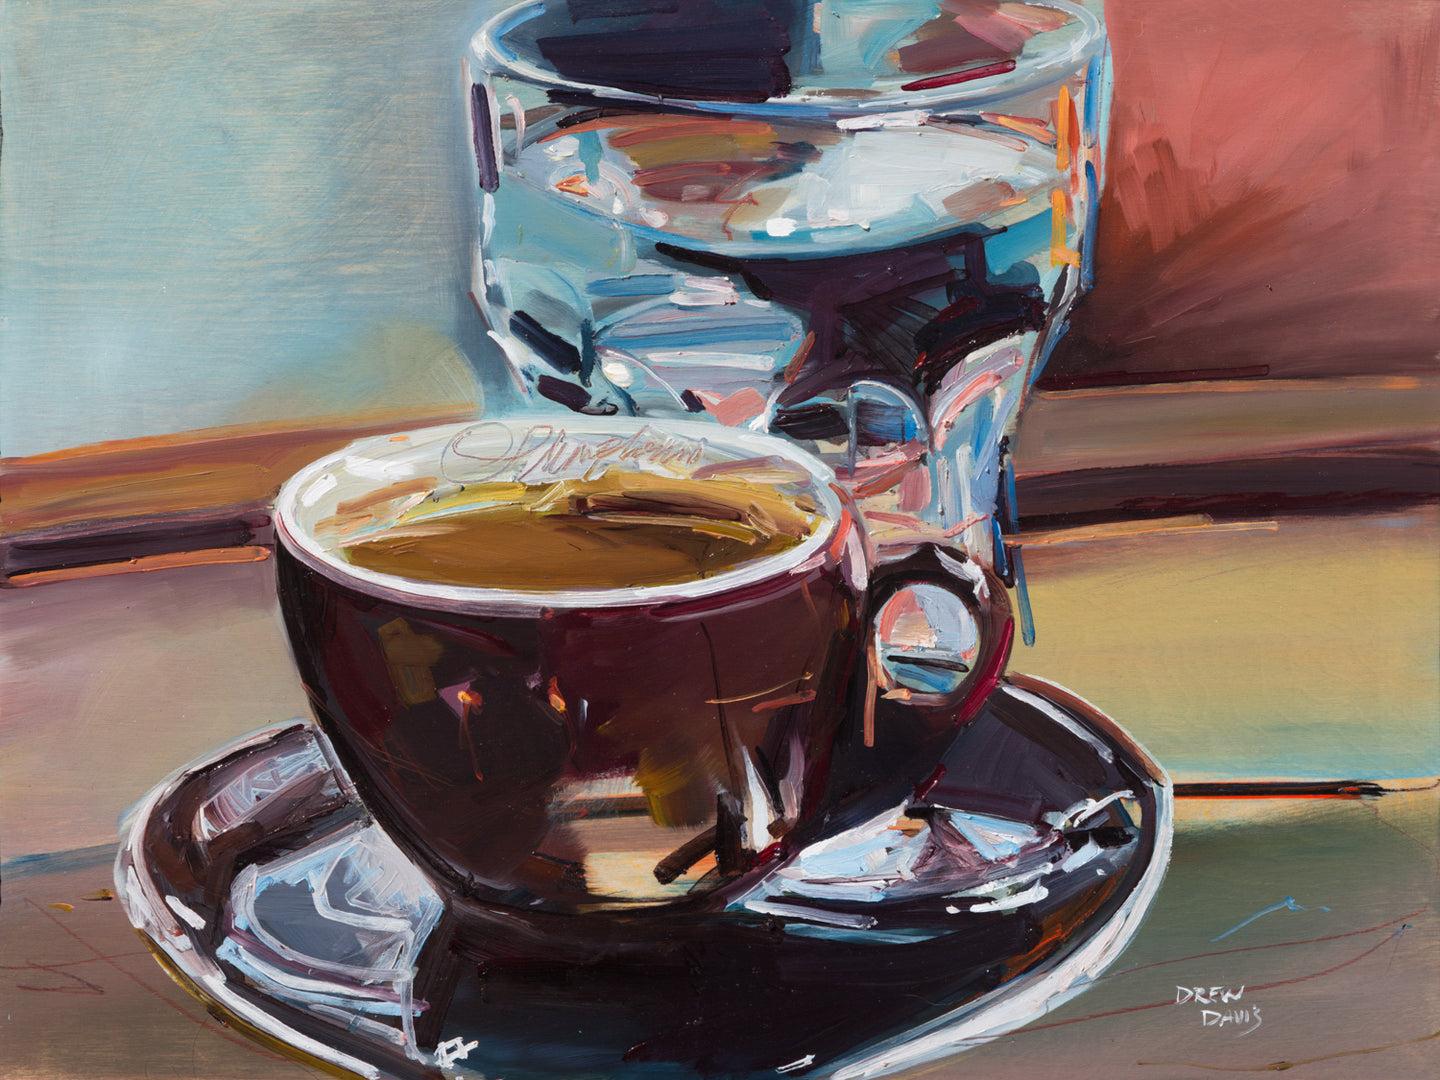 Stumptown Espresso  | 18x24 | Original Oil On Wood Panel